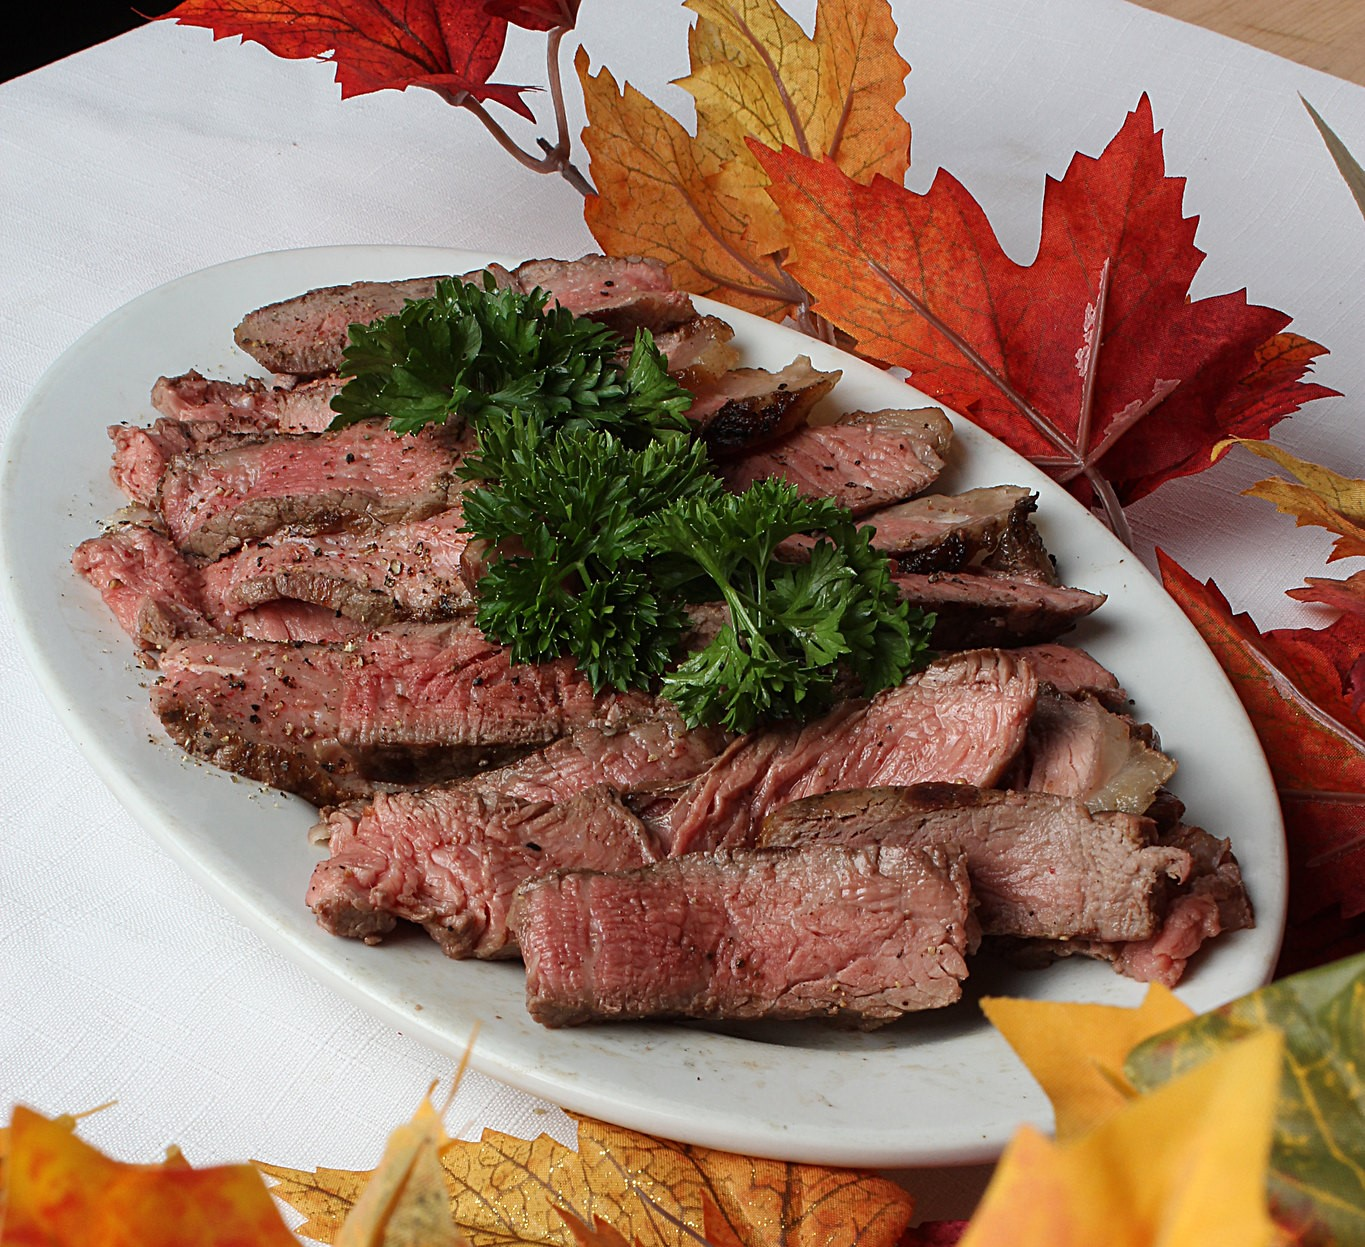 Local Producers Now Taking Orders for Holiday Meats